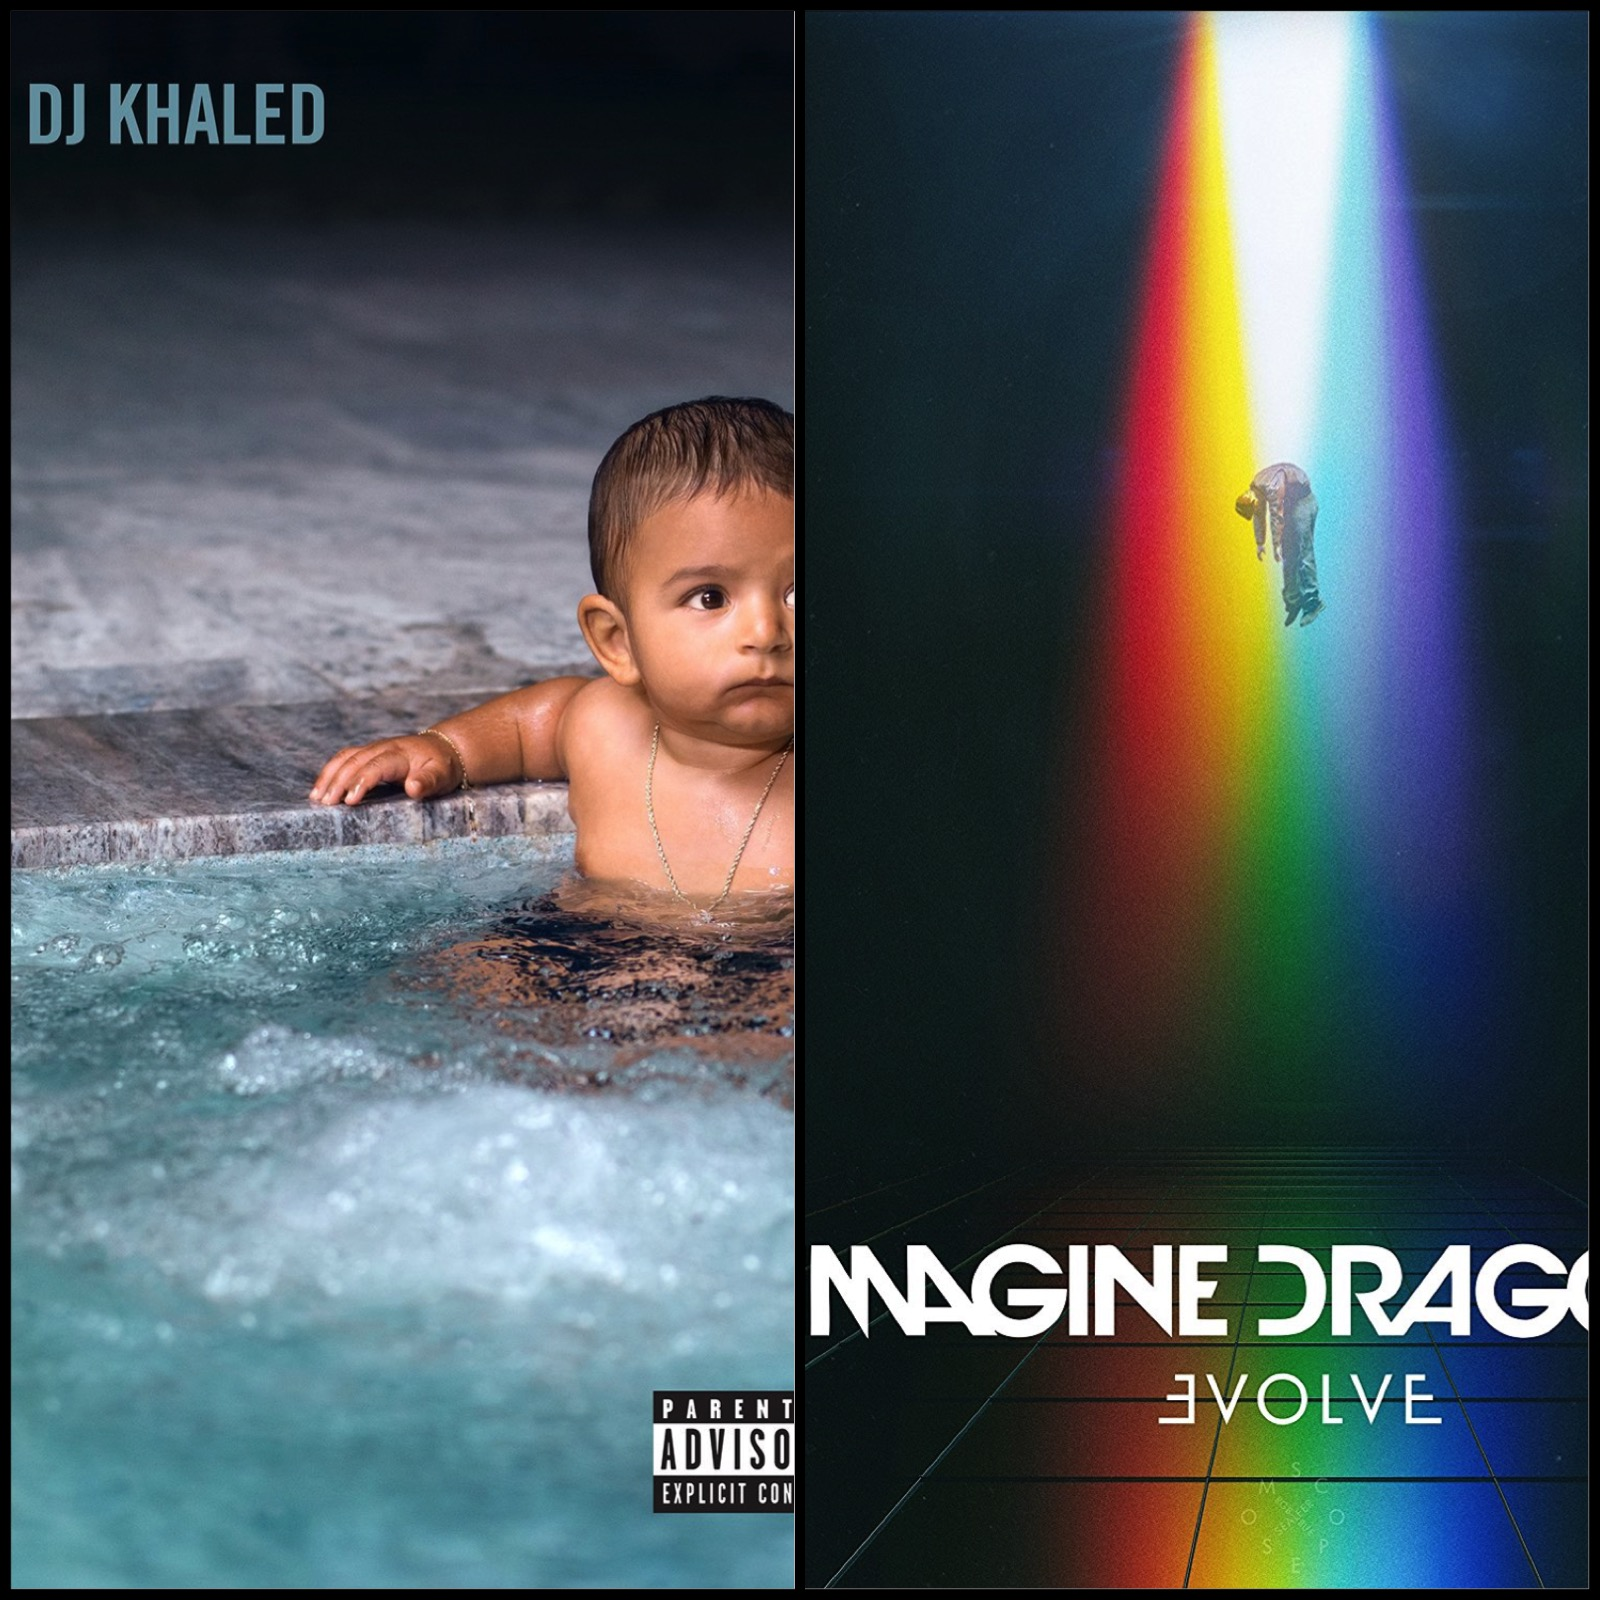 The Chart Scoop | DJ Khaled Edges Imagine Dragons for No. 1